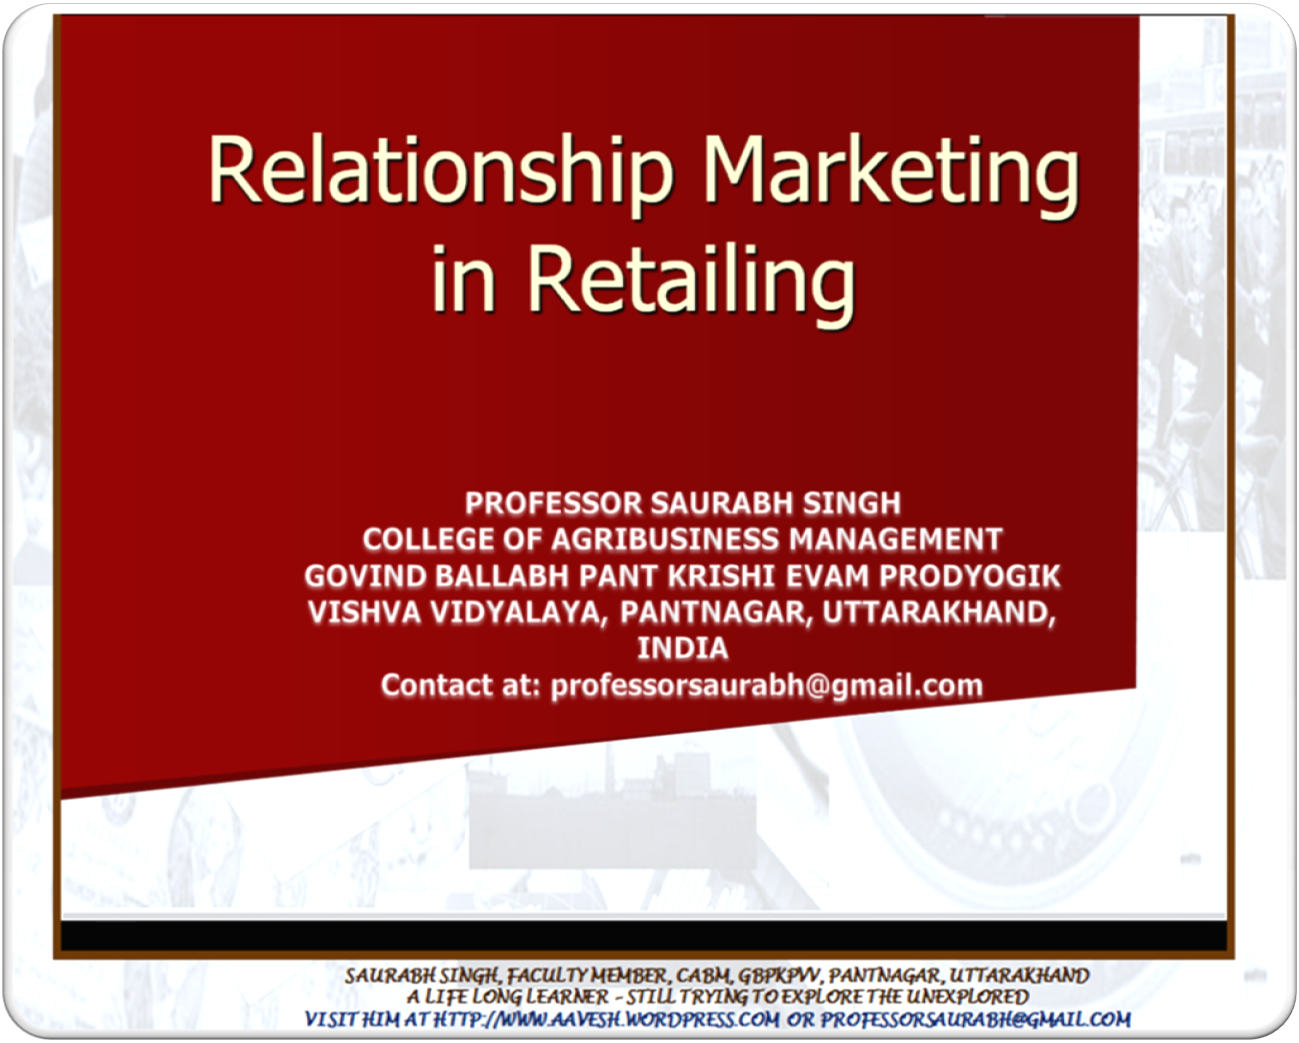 saurabh patel and ambani relationship marketing